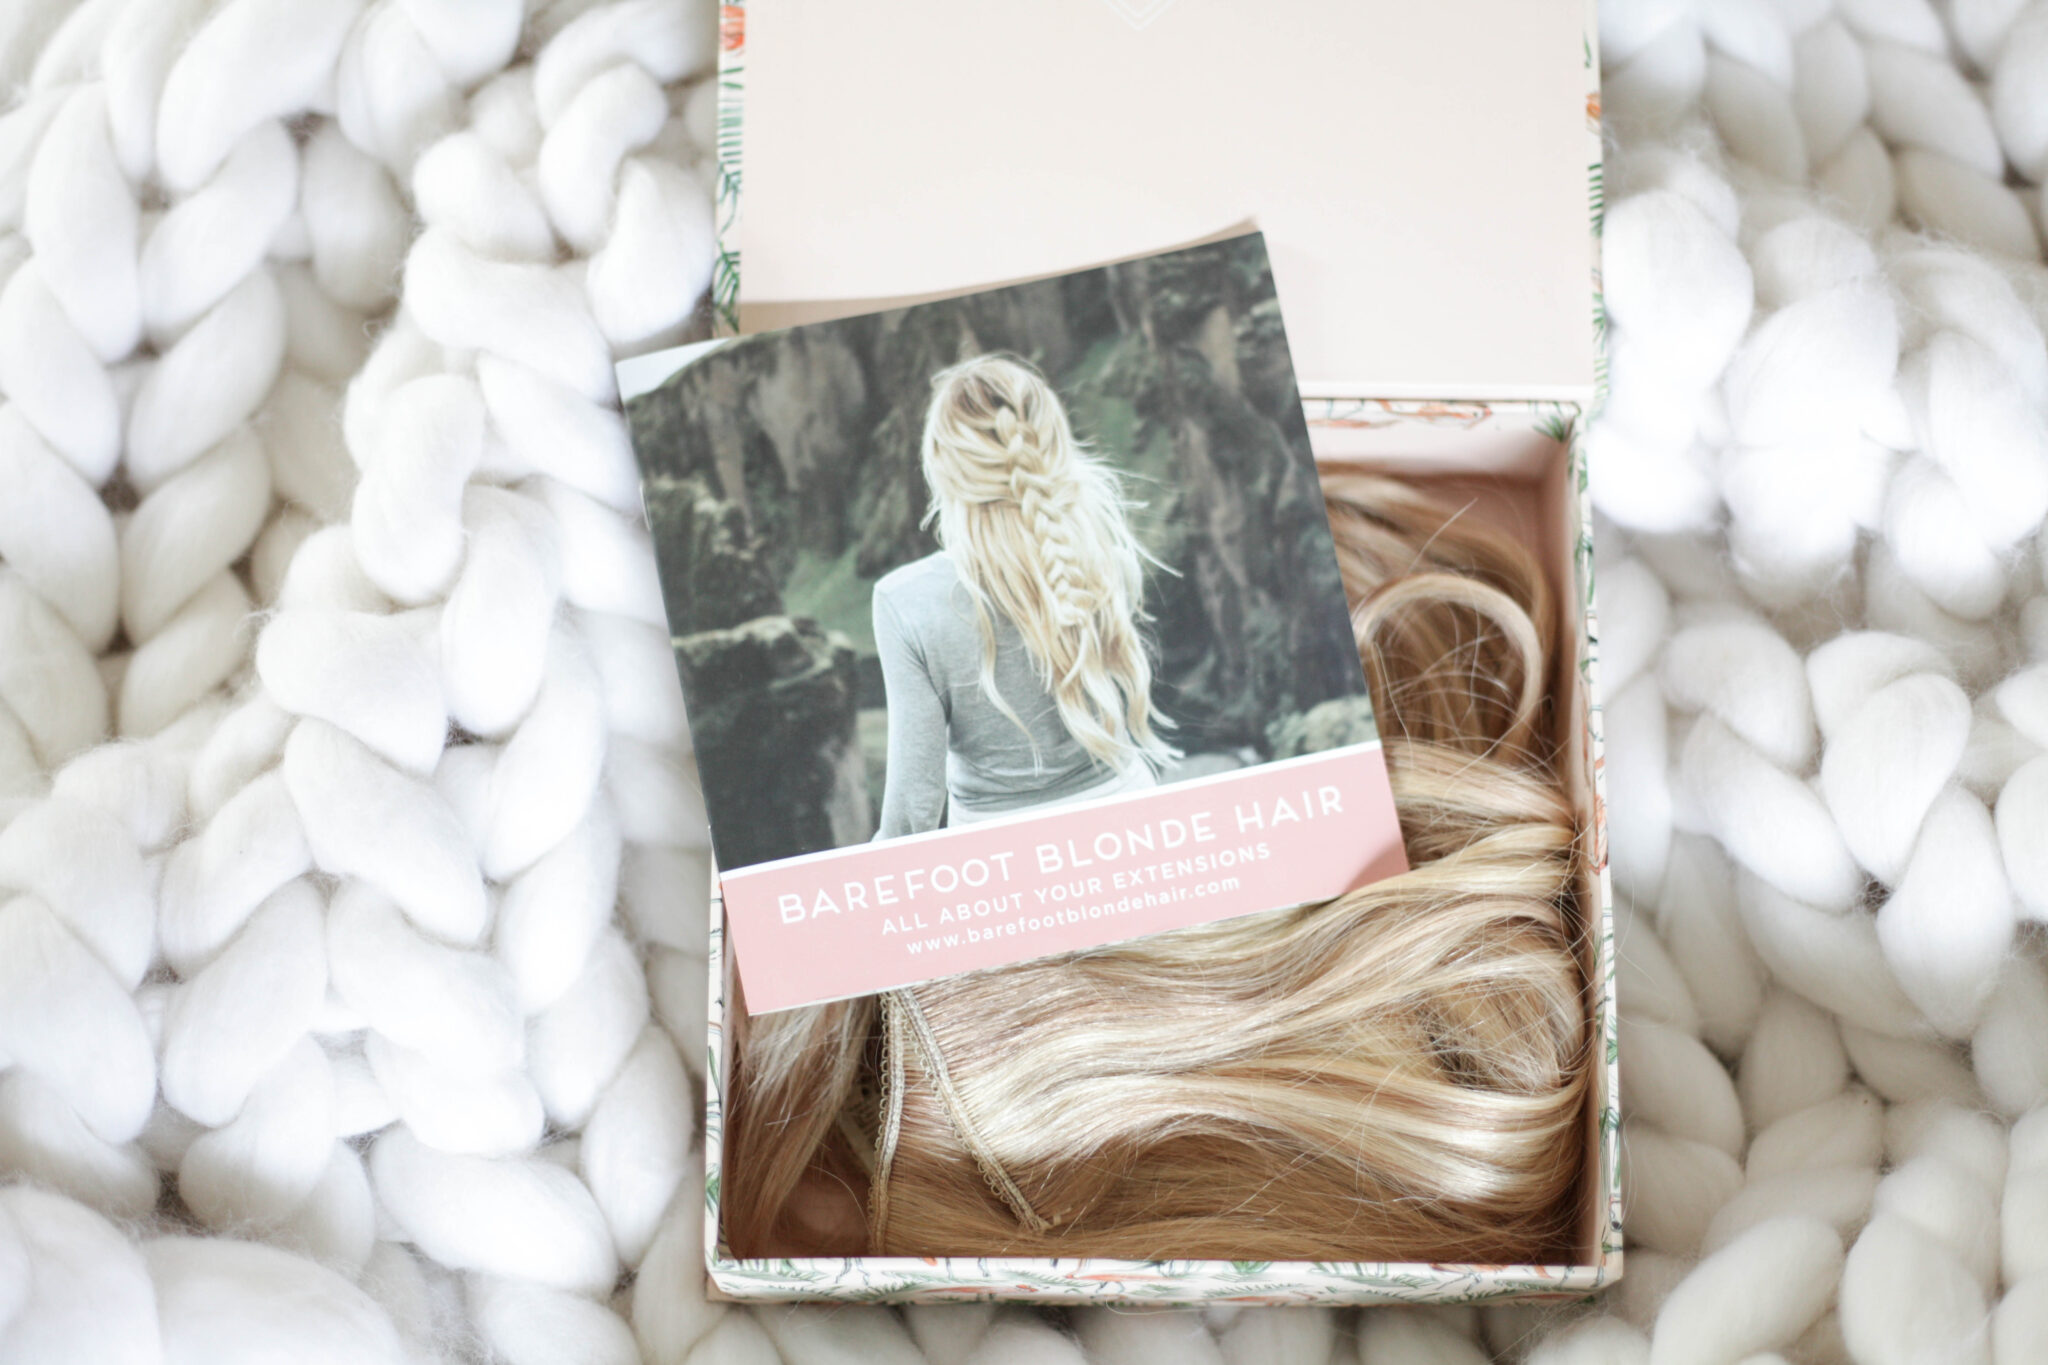 booklet included with barefoot blonde hair by amber fillerup